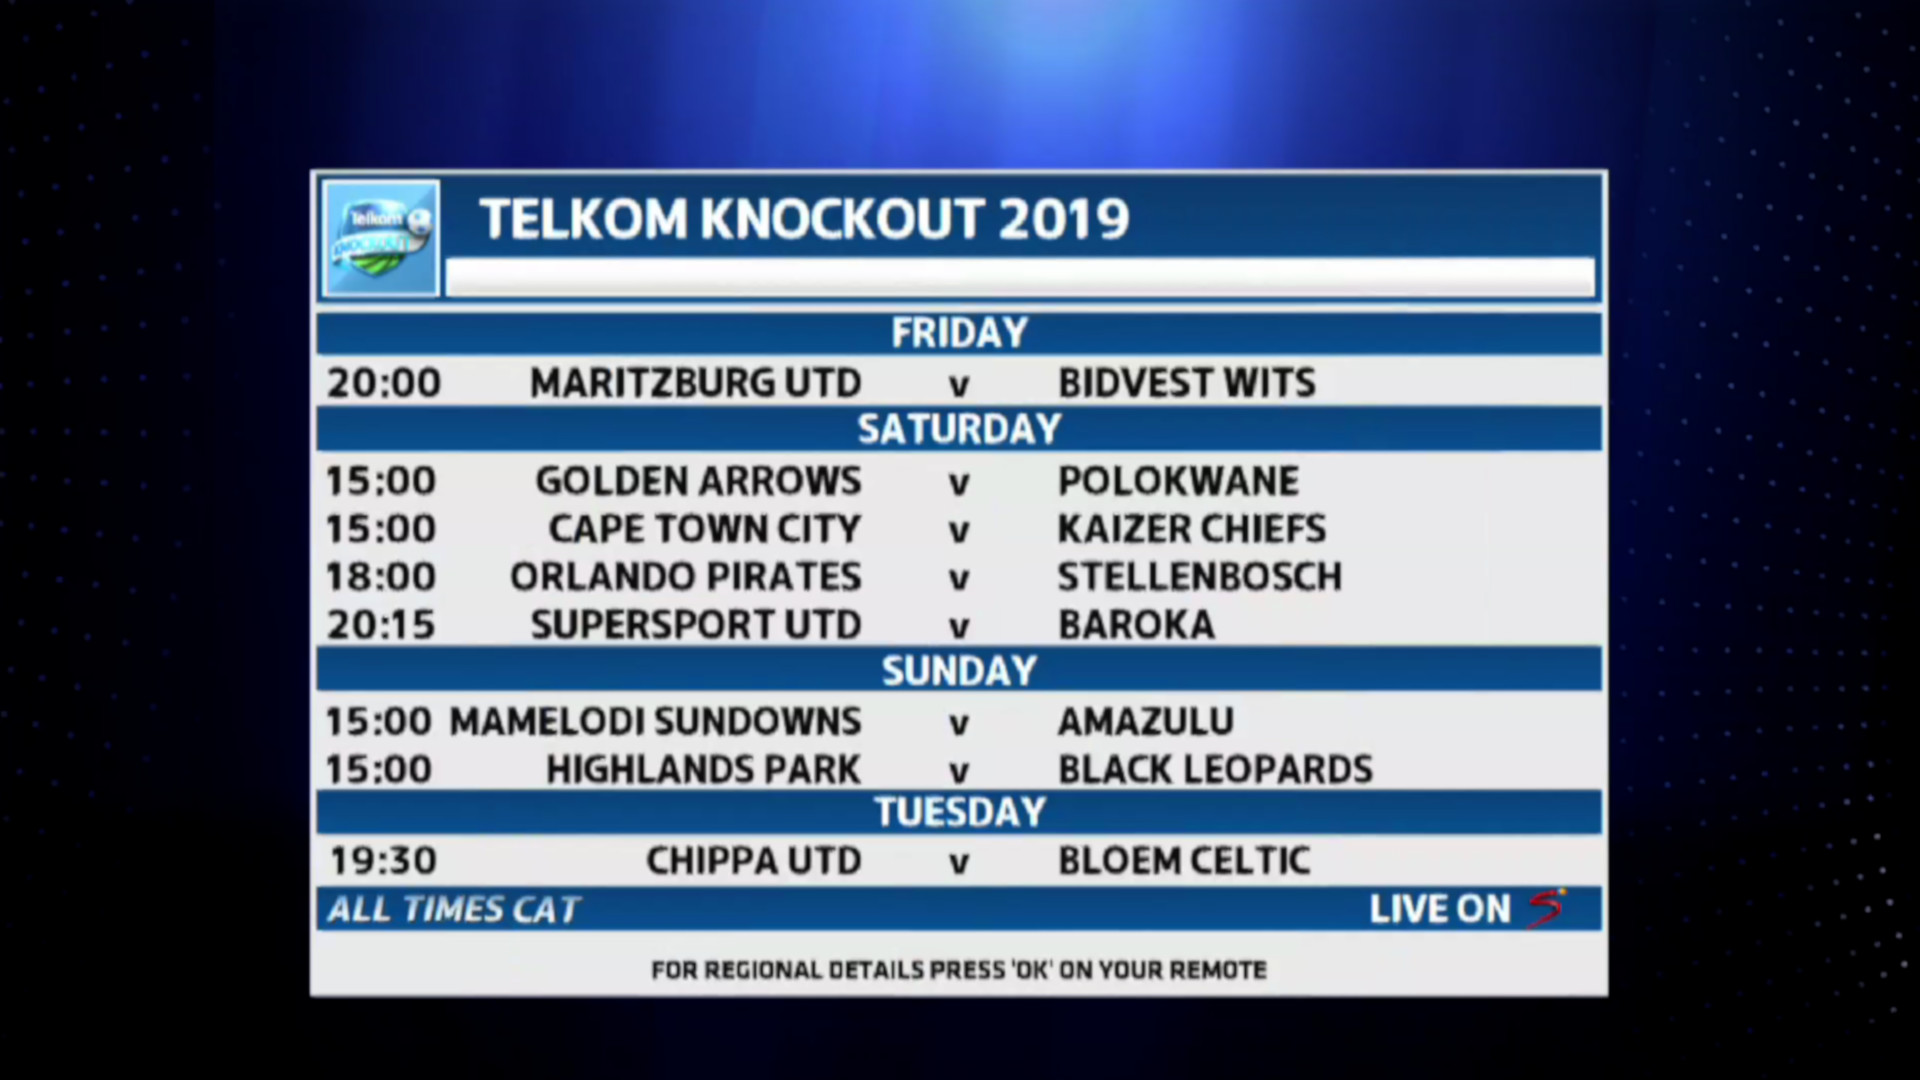 Telkom Knockout | TKP dates confirmed